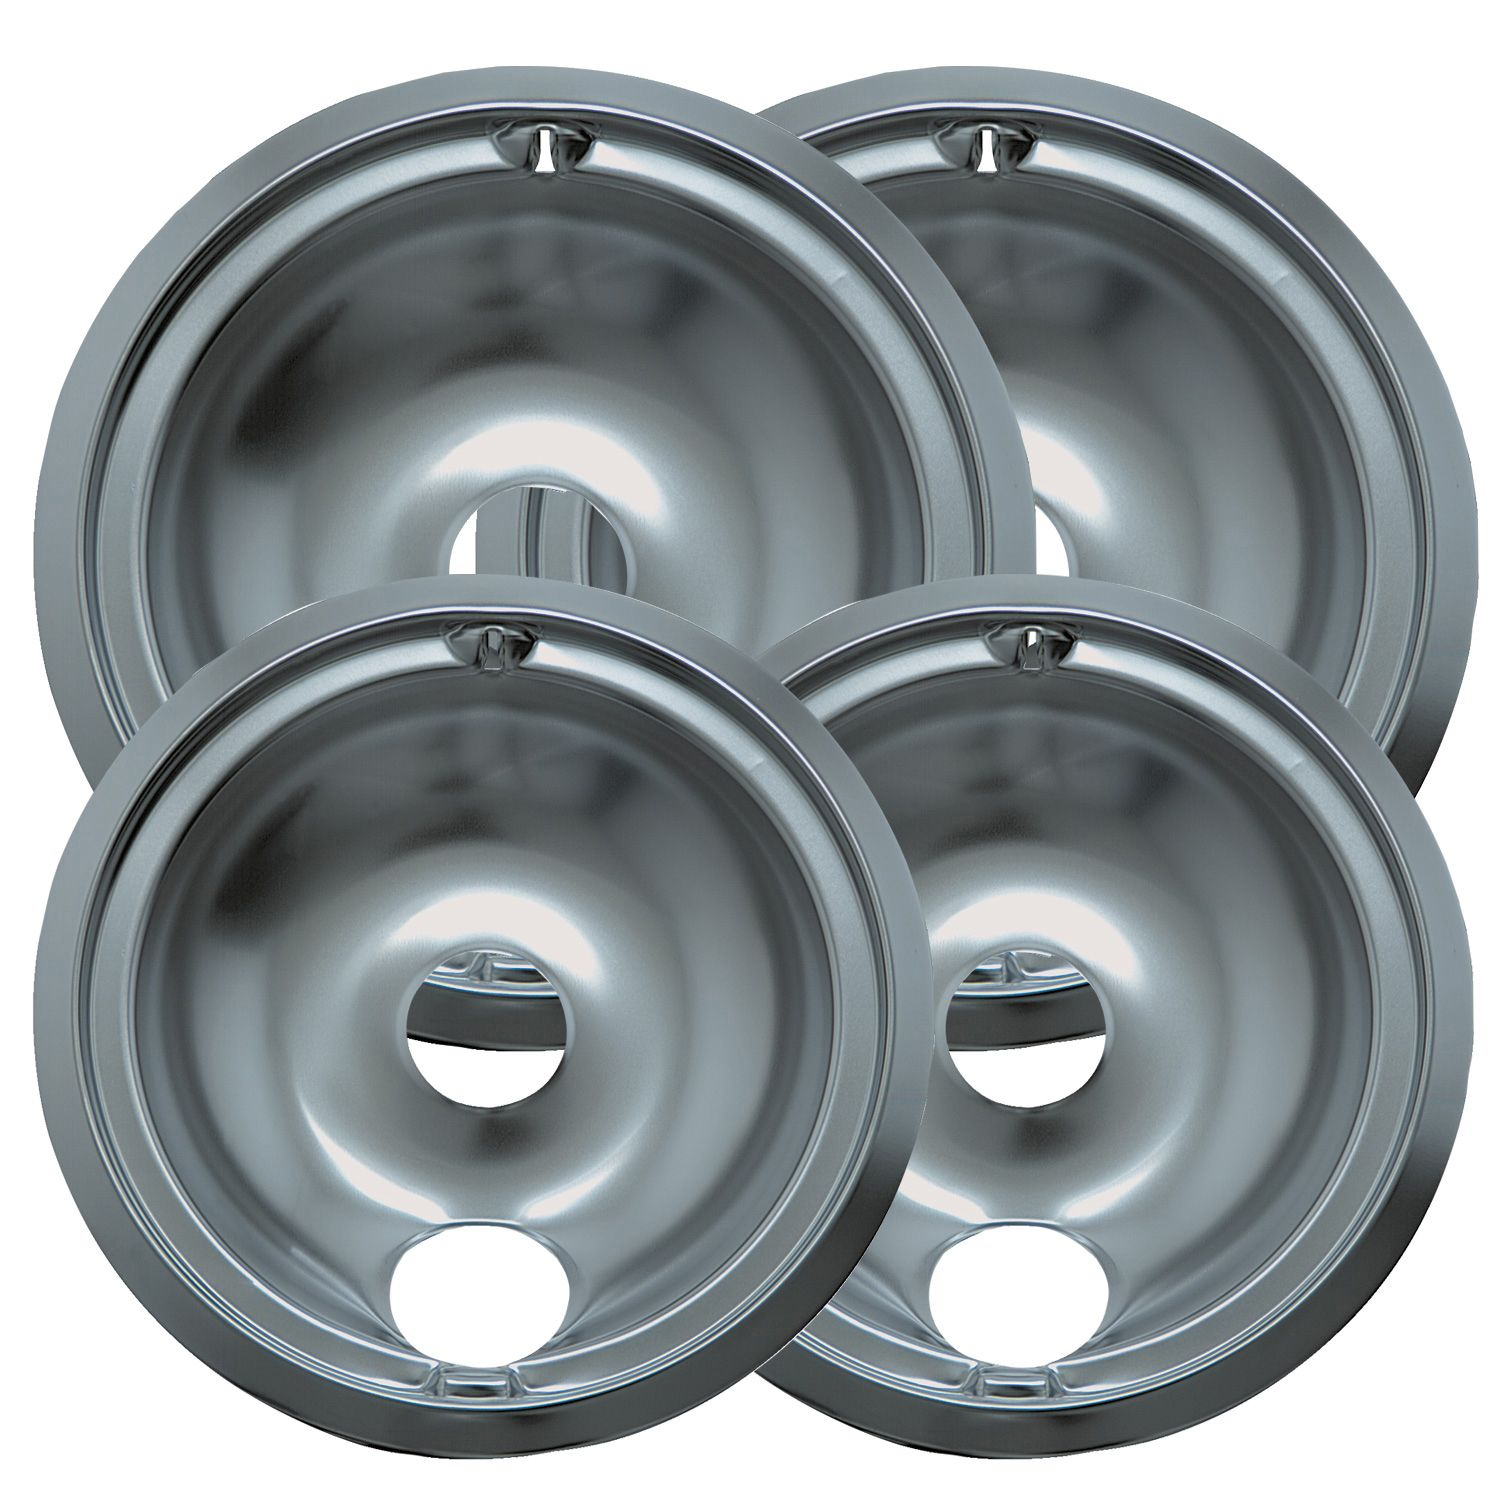 Range Kleen 4Pc Chrome Drip Pan